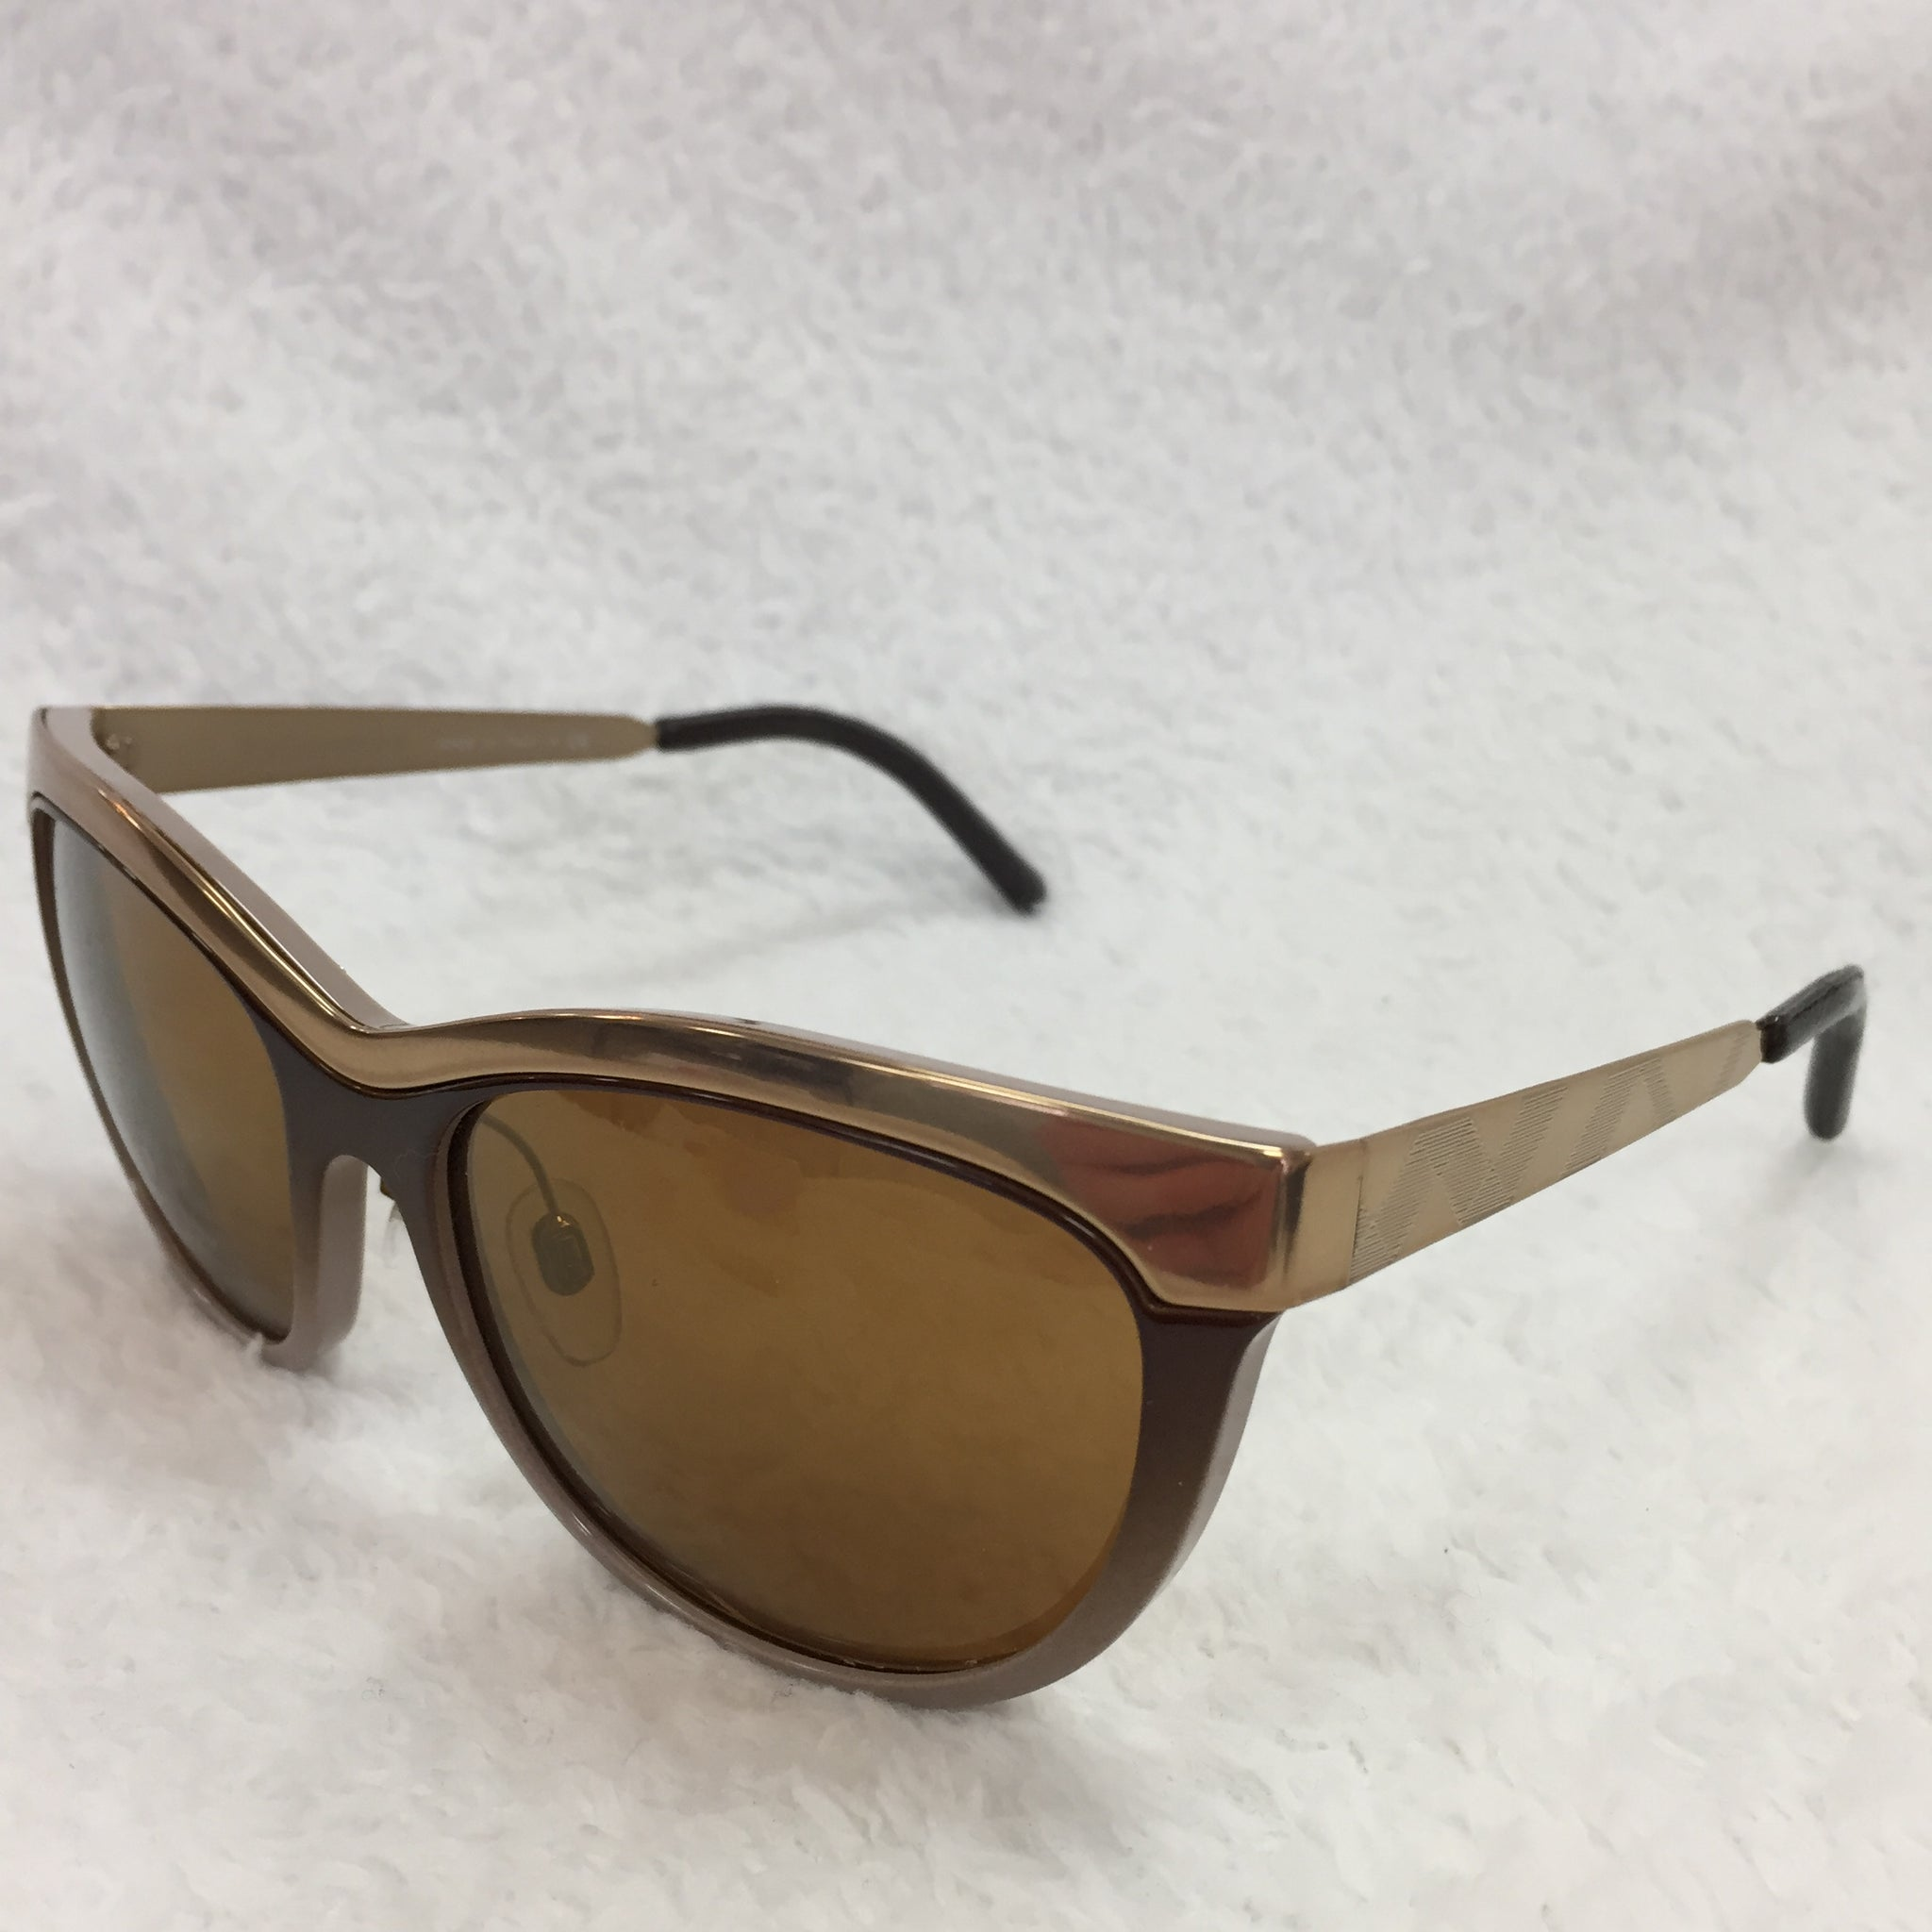 c7534768727c Load image into Gallery viewer, Burberry Bronze Cat Eye Sunglasses ...